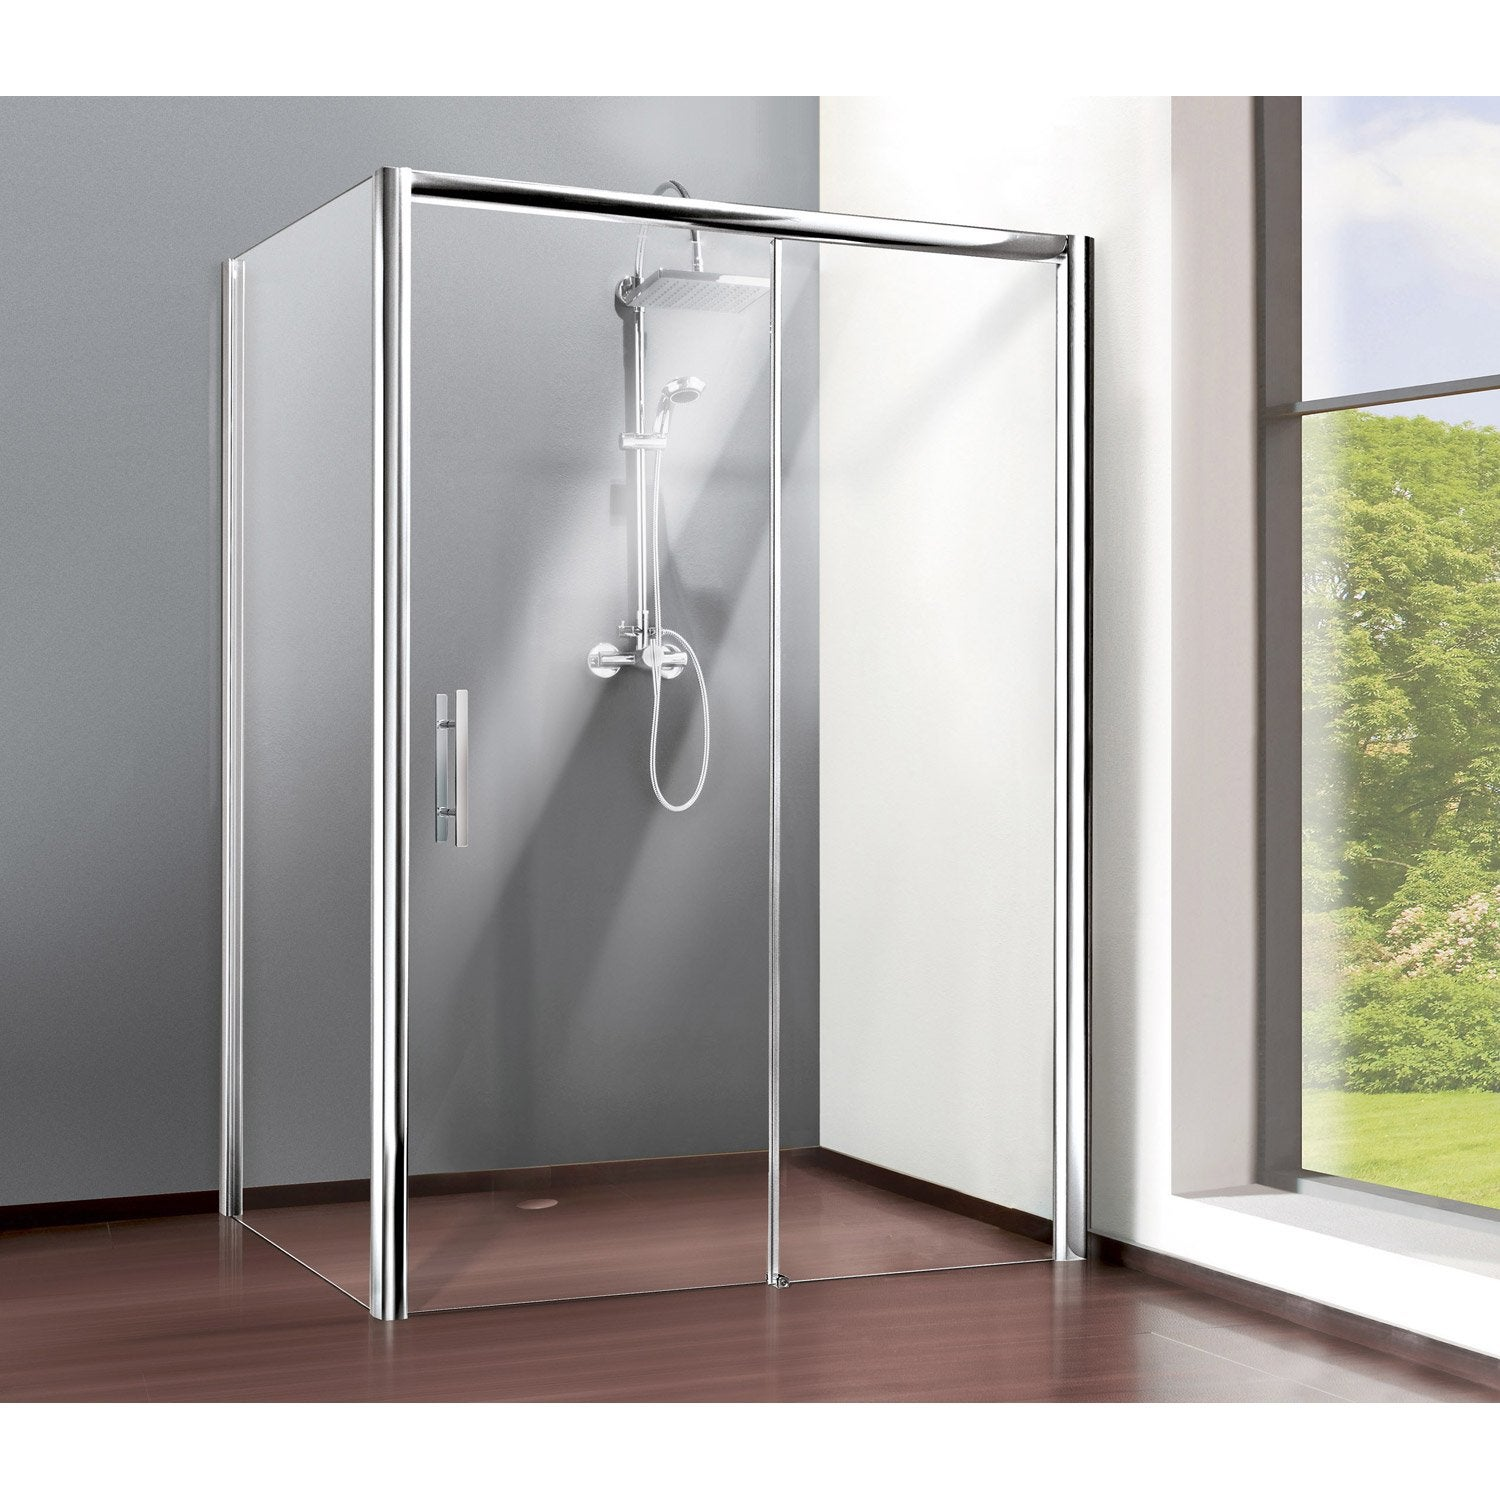 porte de douche coulissante 100 cm transparent adena. Black Bedroom Furniture Sets. Home Design Ideas